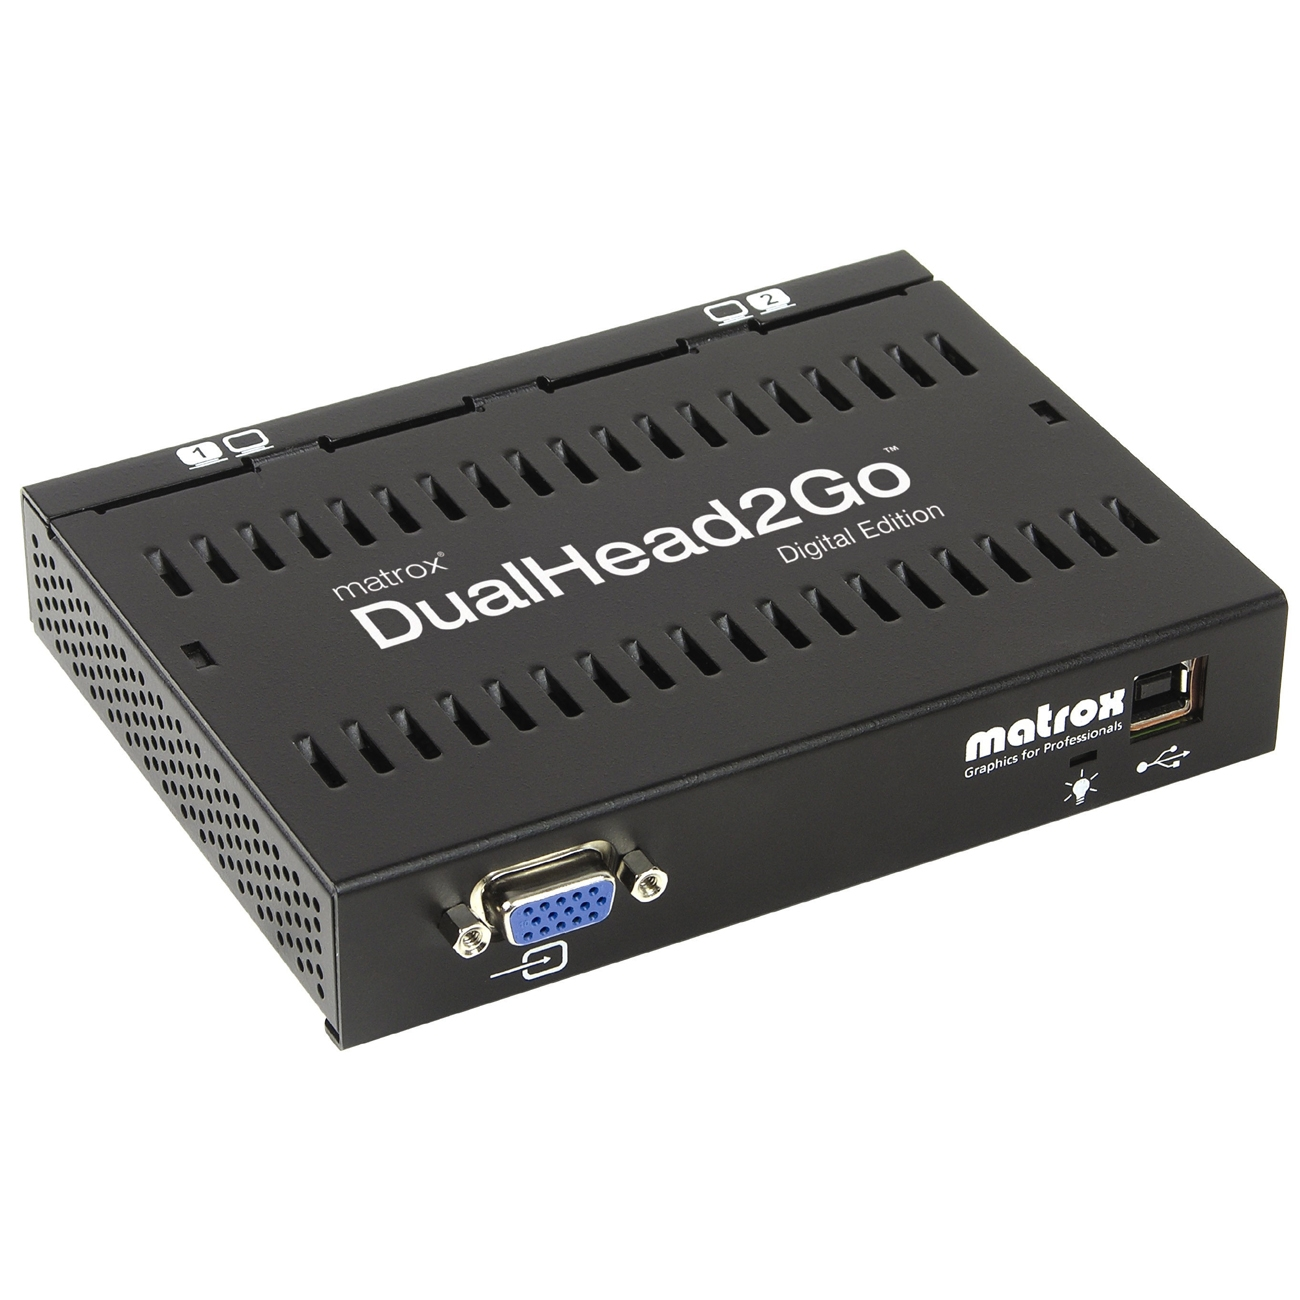 Matrox Graphics D2g-a2d-if Dualhead2go Digital Edition (d2ga2dif)